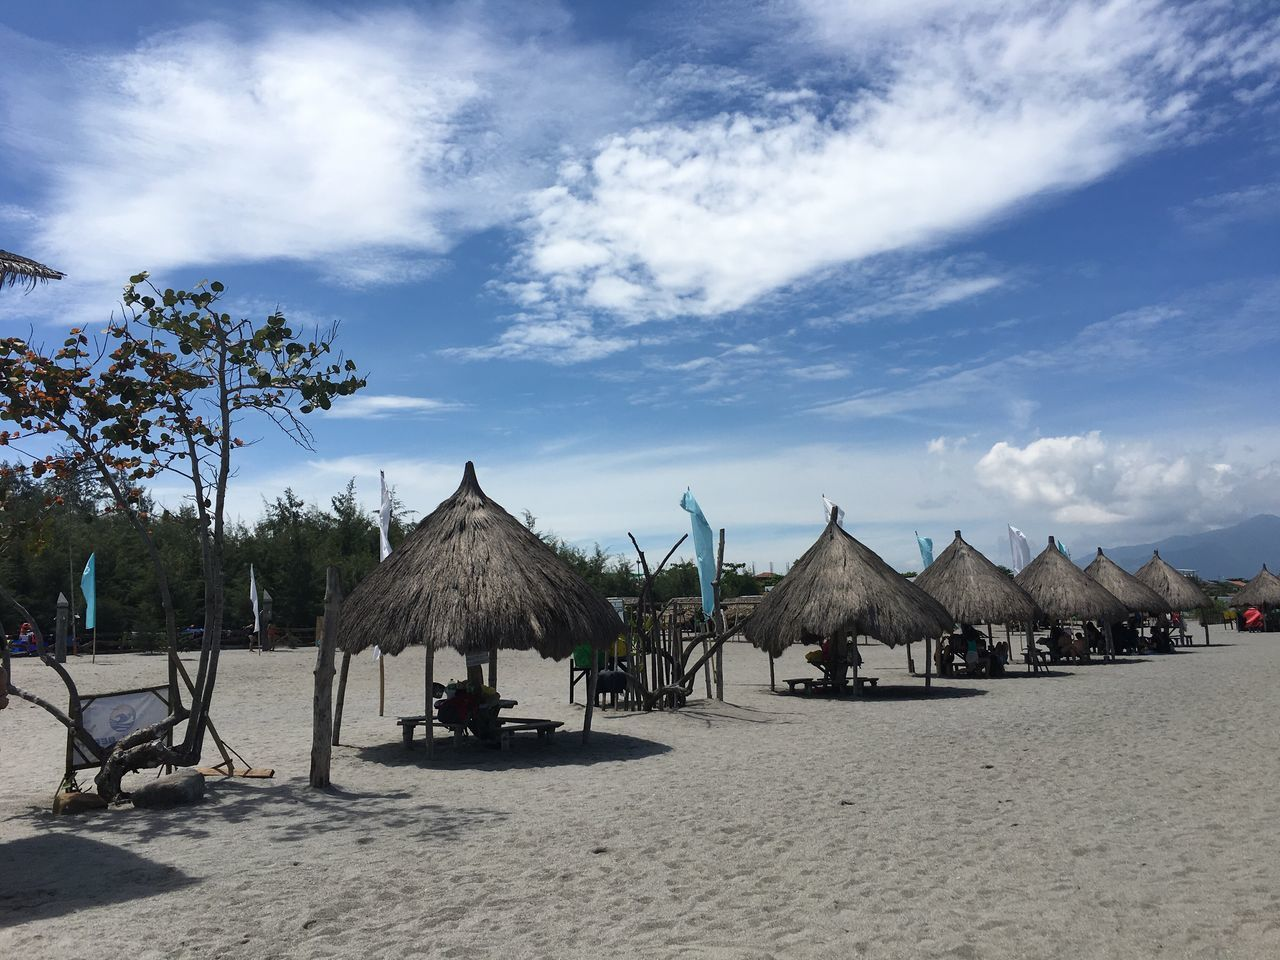 Live For The Story Tranquility Beauty In Nature Beach Sand Sky Thatched Roof Outdoors Nature Day Tranquility Shelter No People Sand & Sea Eyemphilippines Landscape Scenics Sunbathing Beach Walk Beachlife Cloud - Sky Hut Summer Summer2017 Nipahut